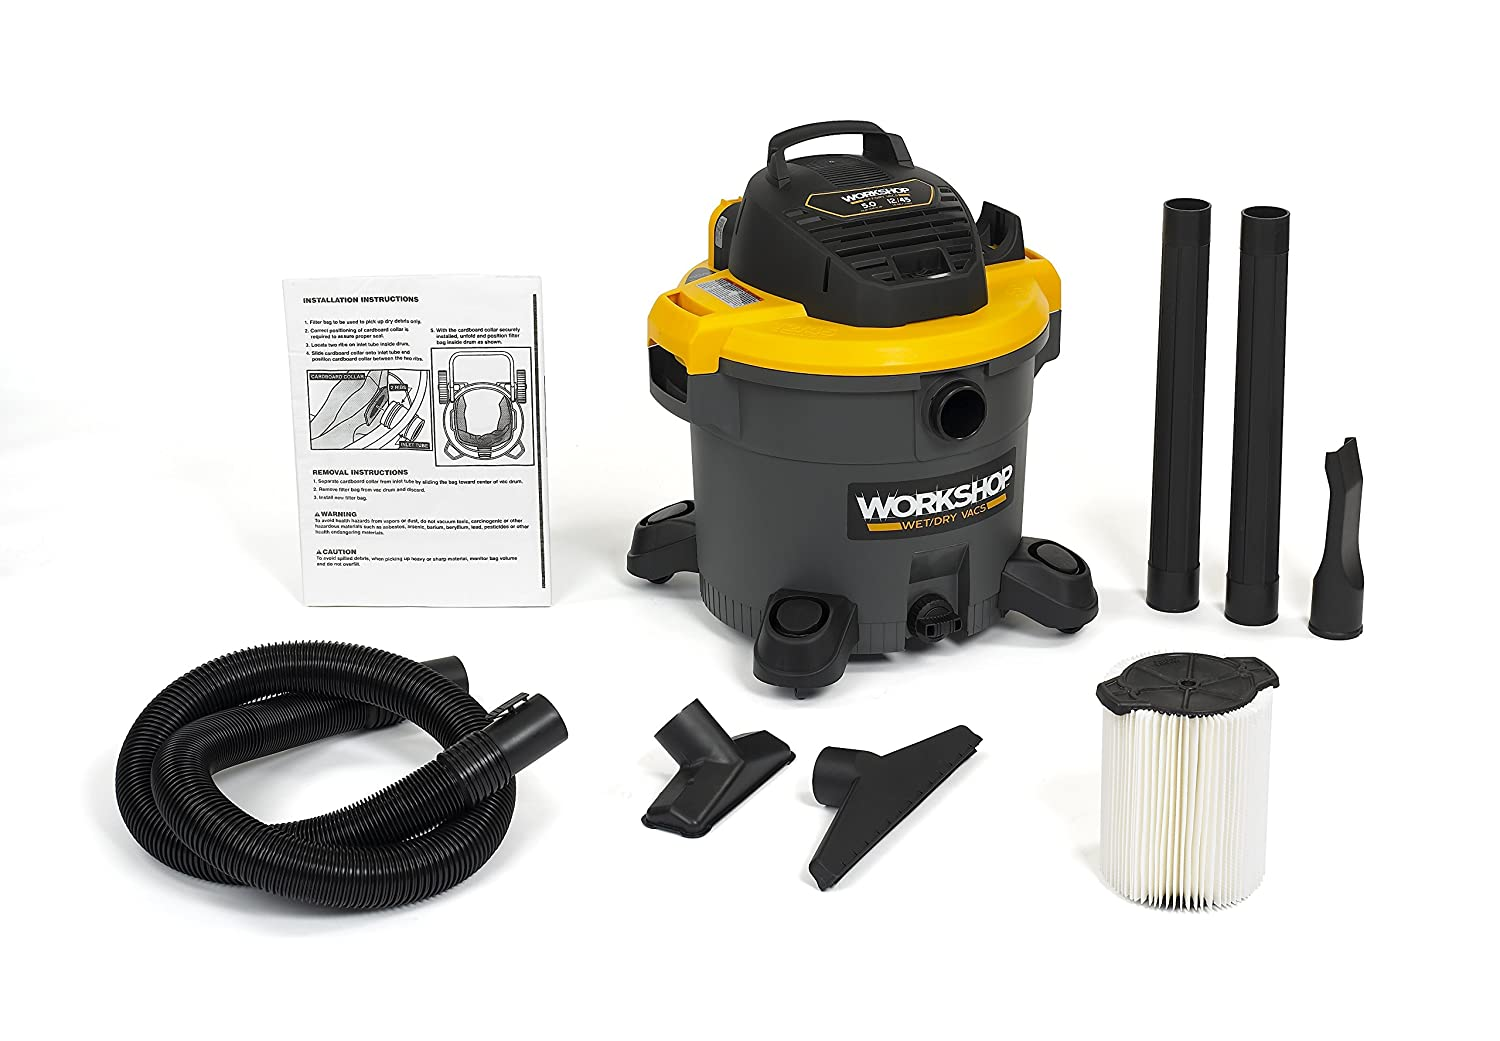 Workshop Wet Dry Vac Ws1200va Heavy Duty General Purpose Rainbow Se Series Vacuum Switch Wiring Schematic Cleaner 12 Gallon Shop 50 Peak Hp And